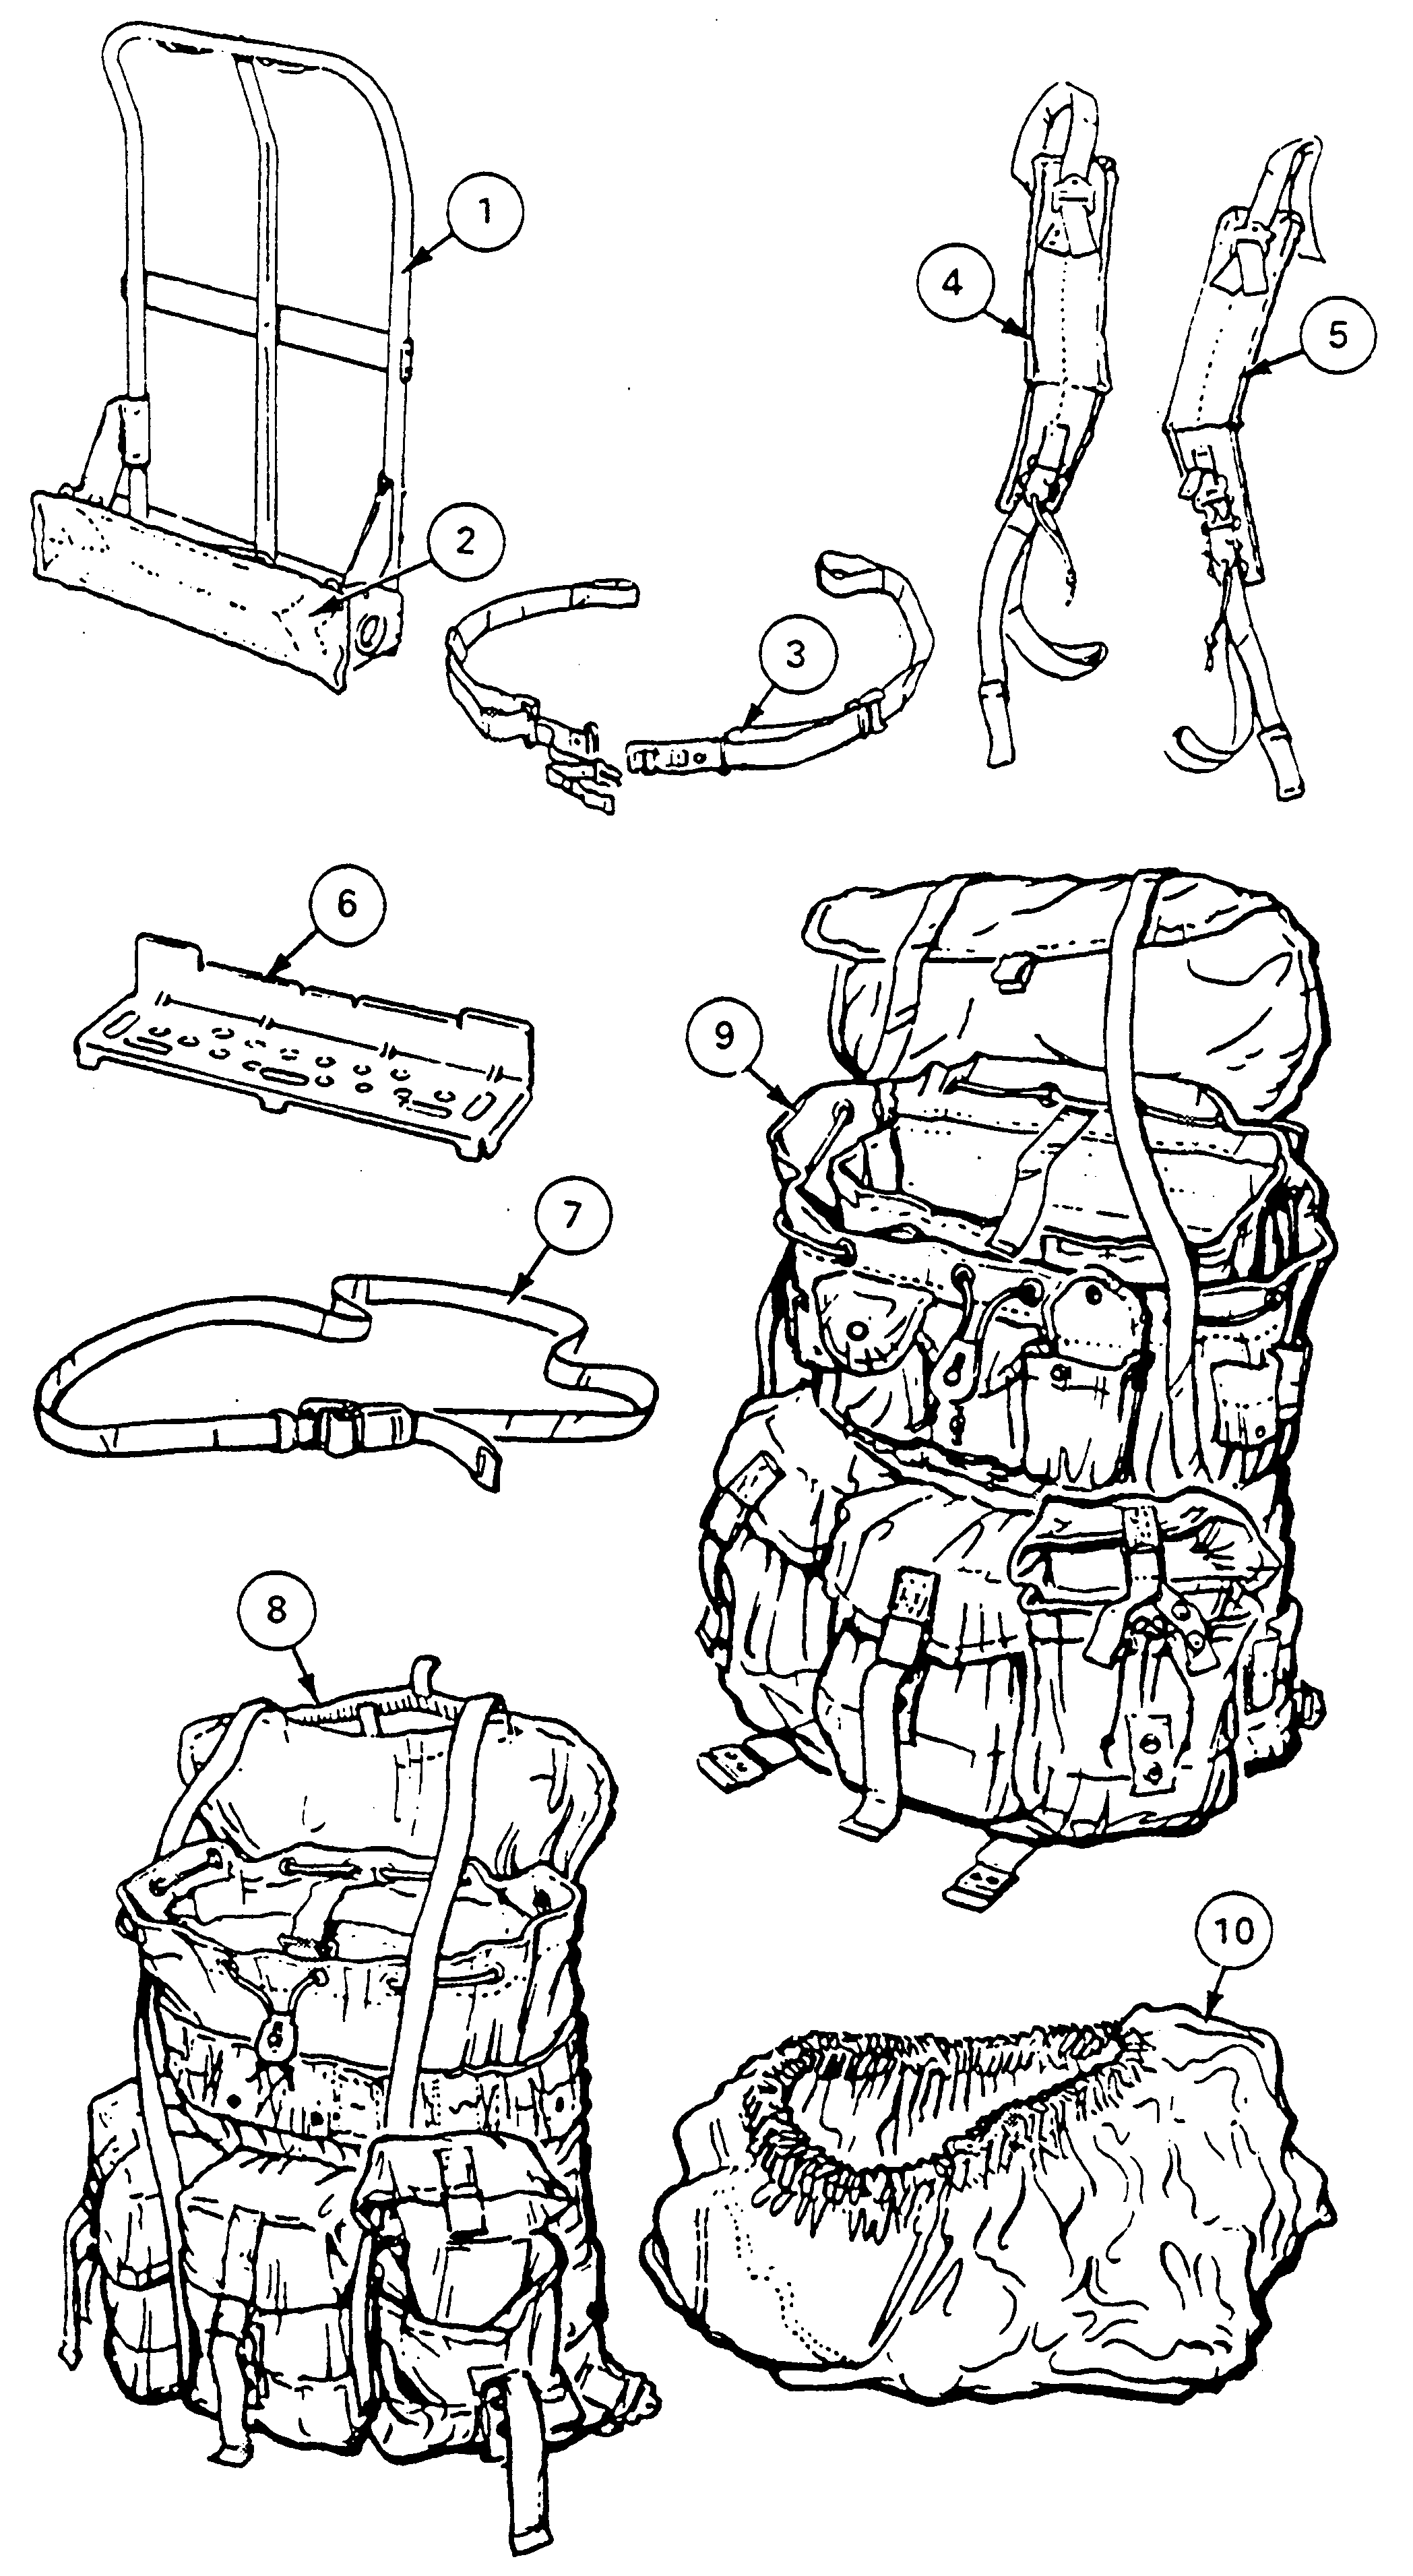 All-purpose Lightweight Individual Carrying Equipment